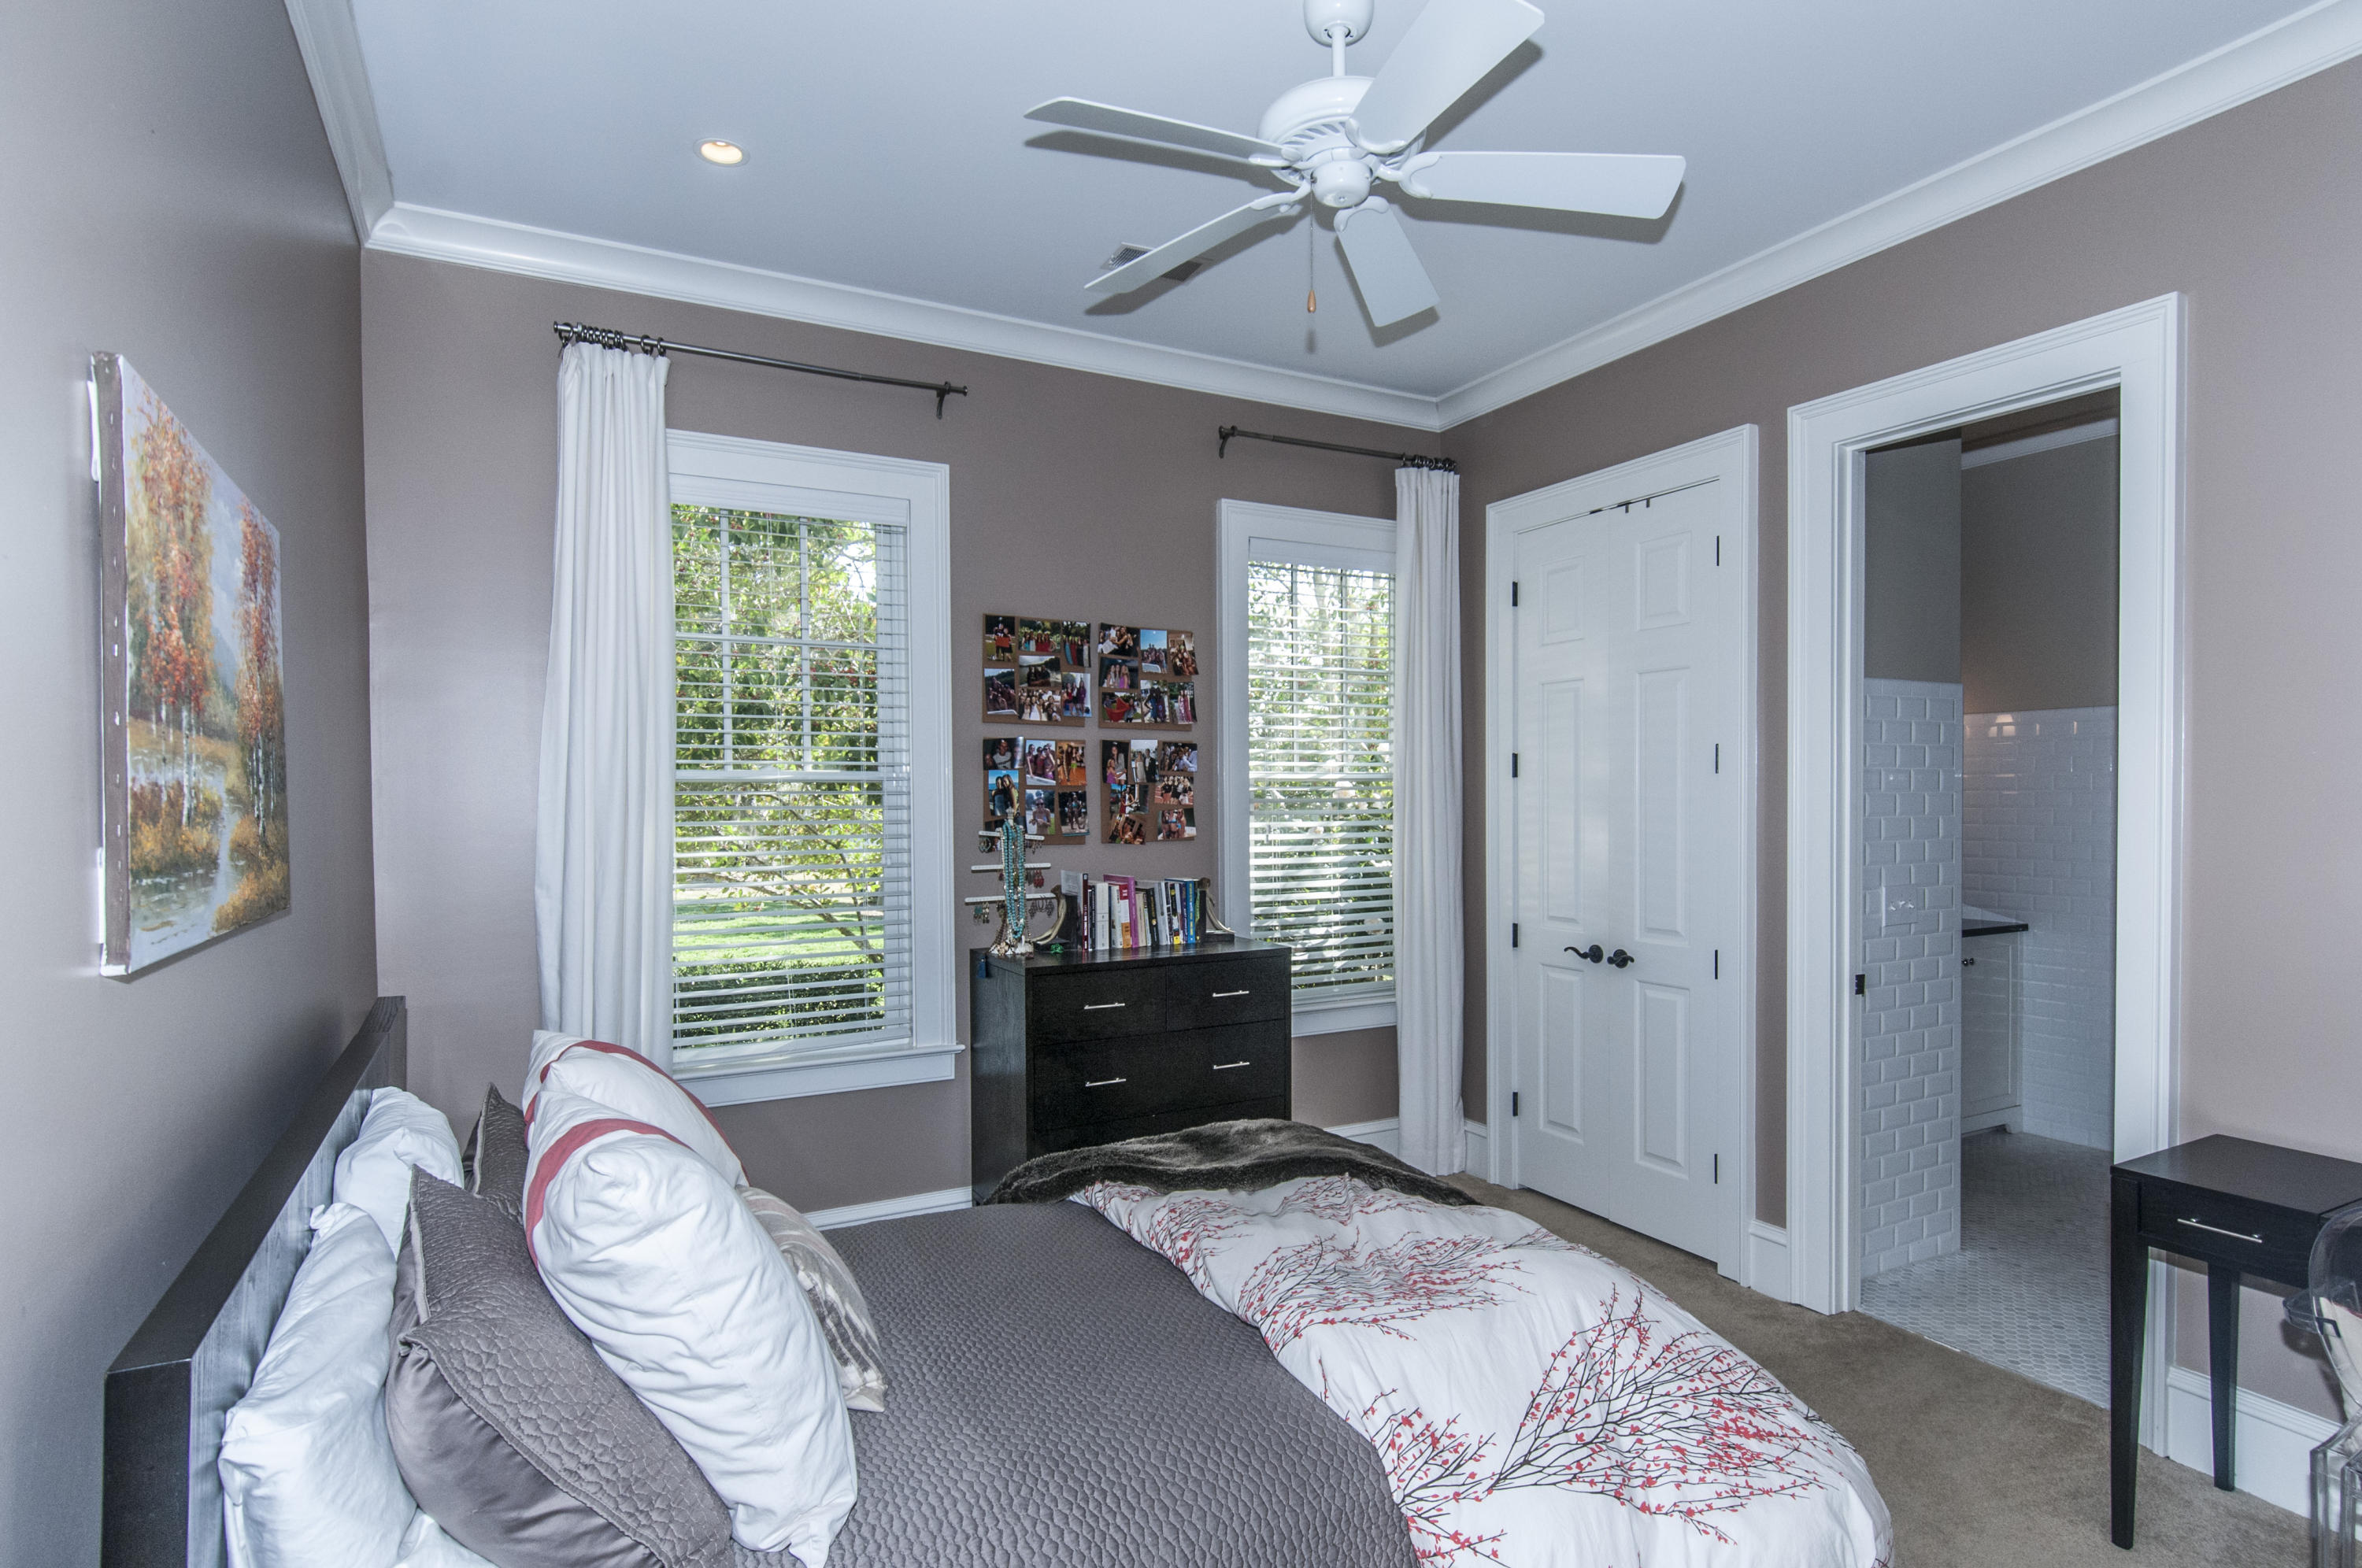 Home for sale 9 Transom Court, Ripley Cove, West Ashley, SC